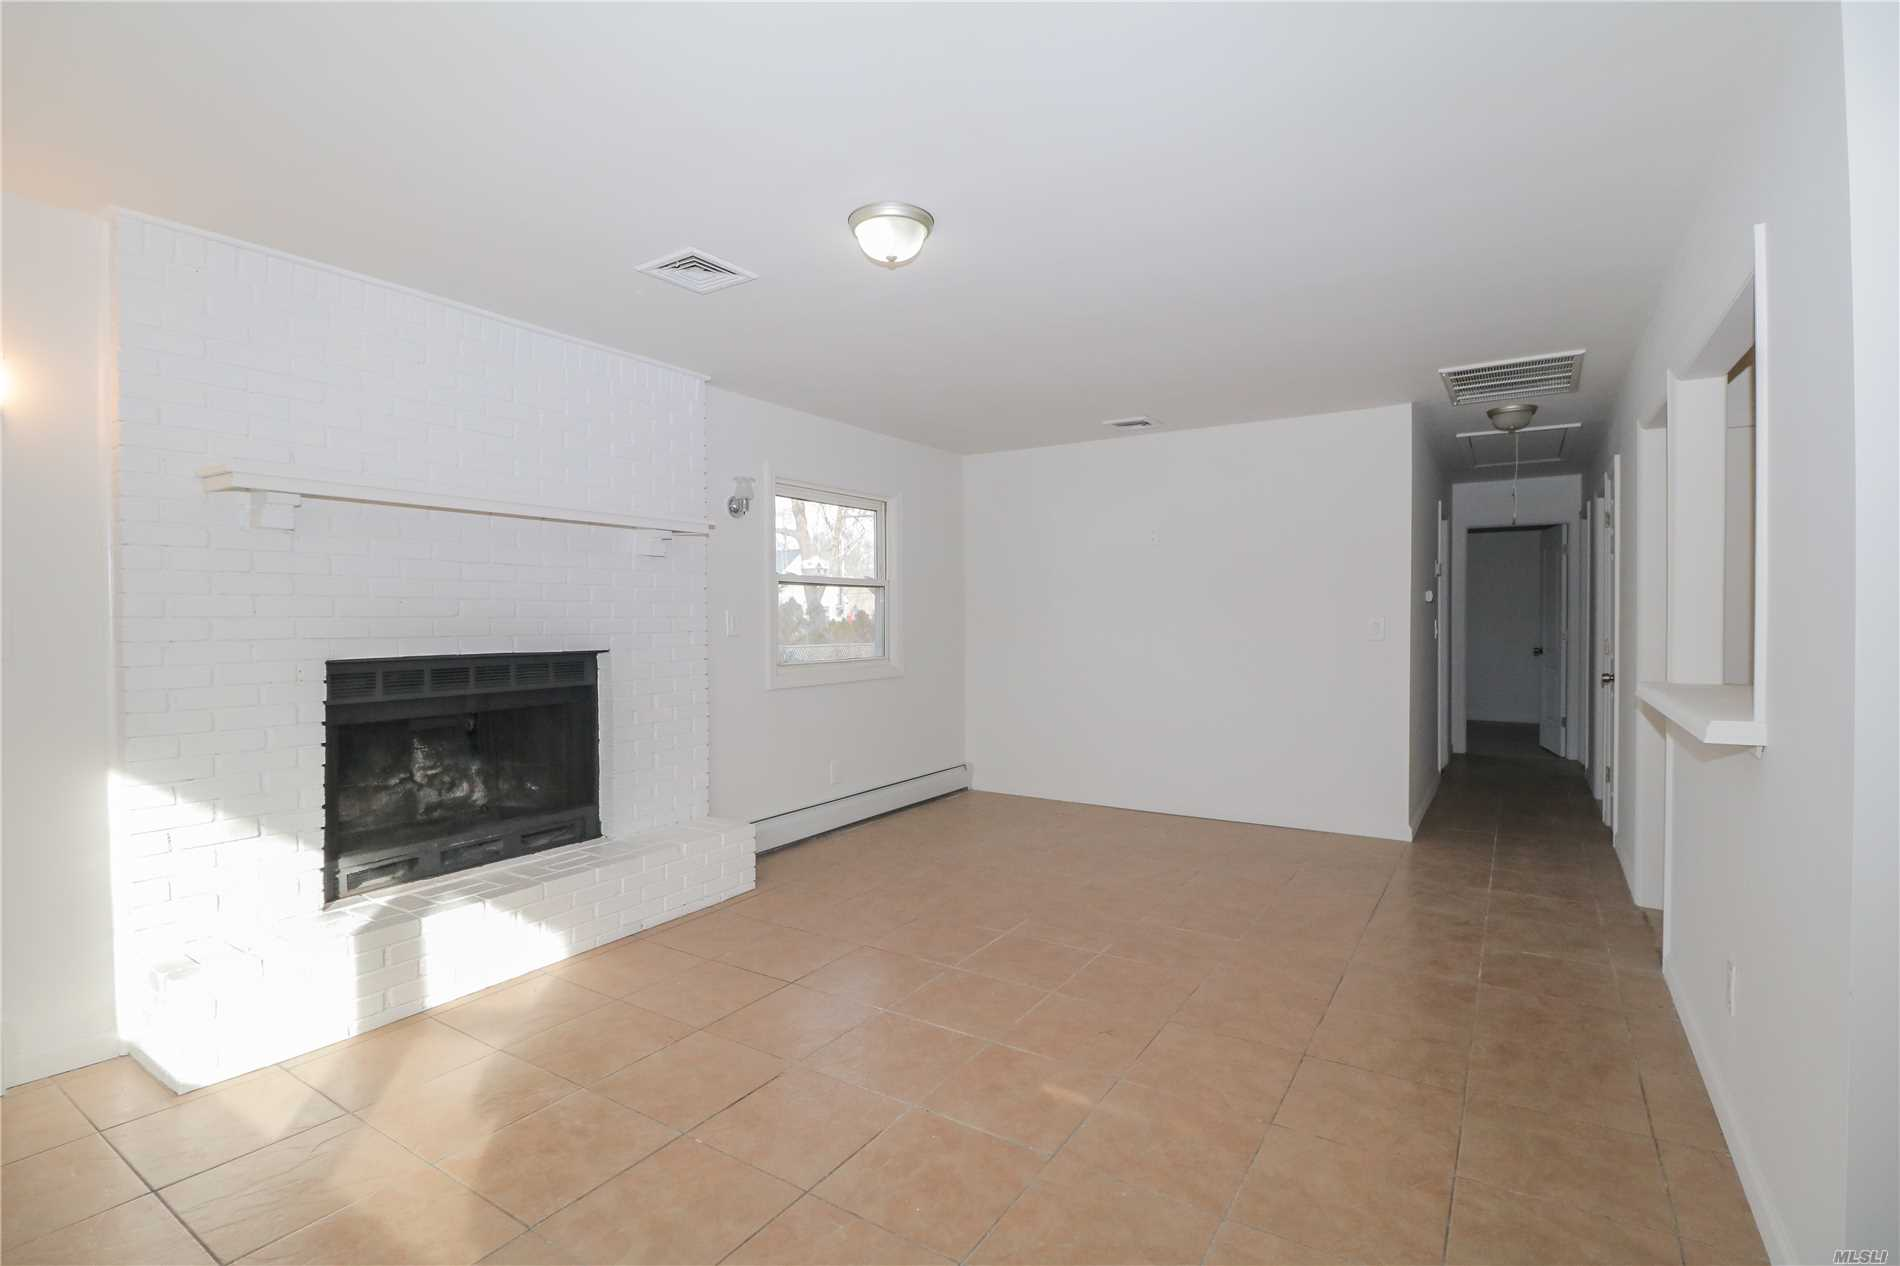 Newly Renovated Ranch With 3 Bedrooms And 2 Baths. Full Basement With Separate Entrance.